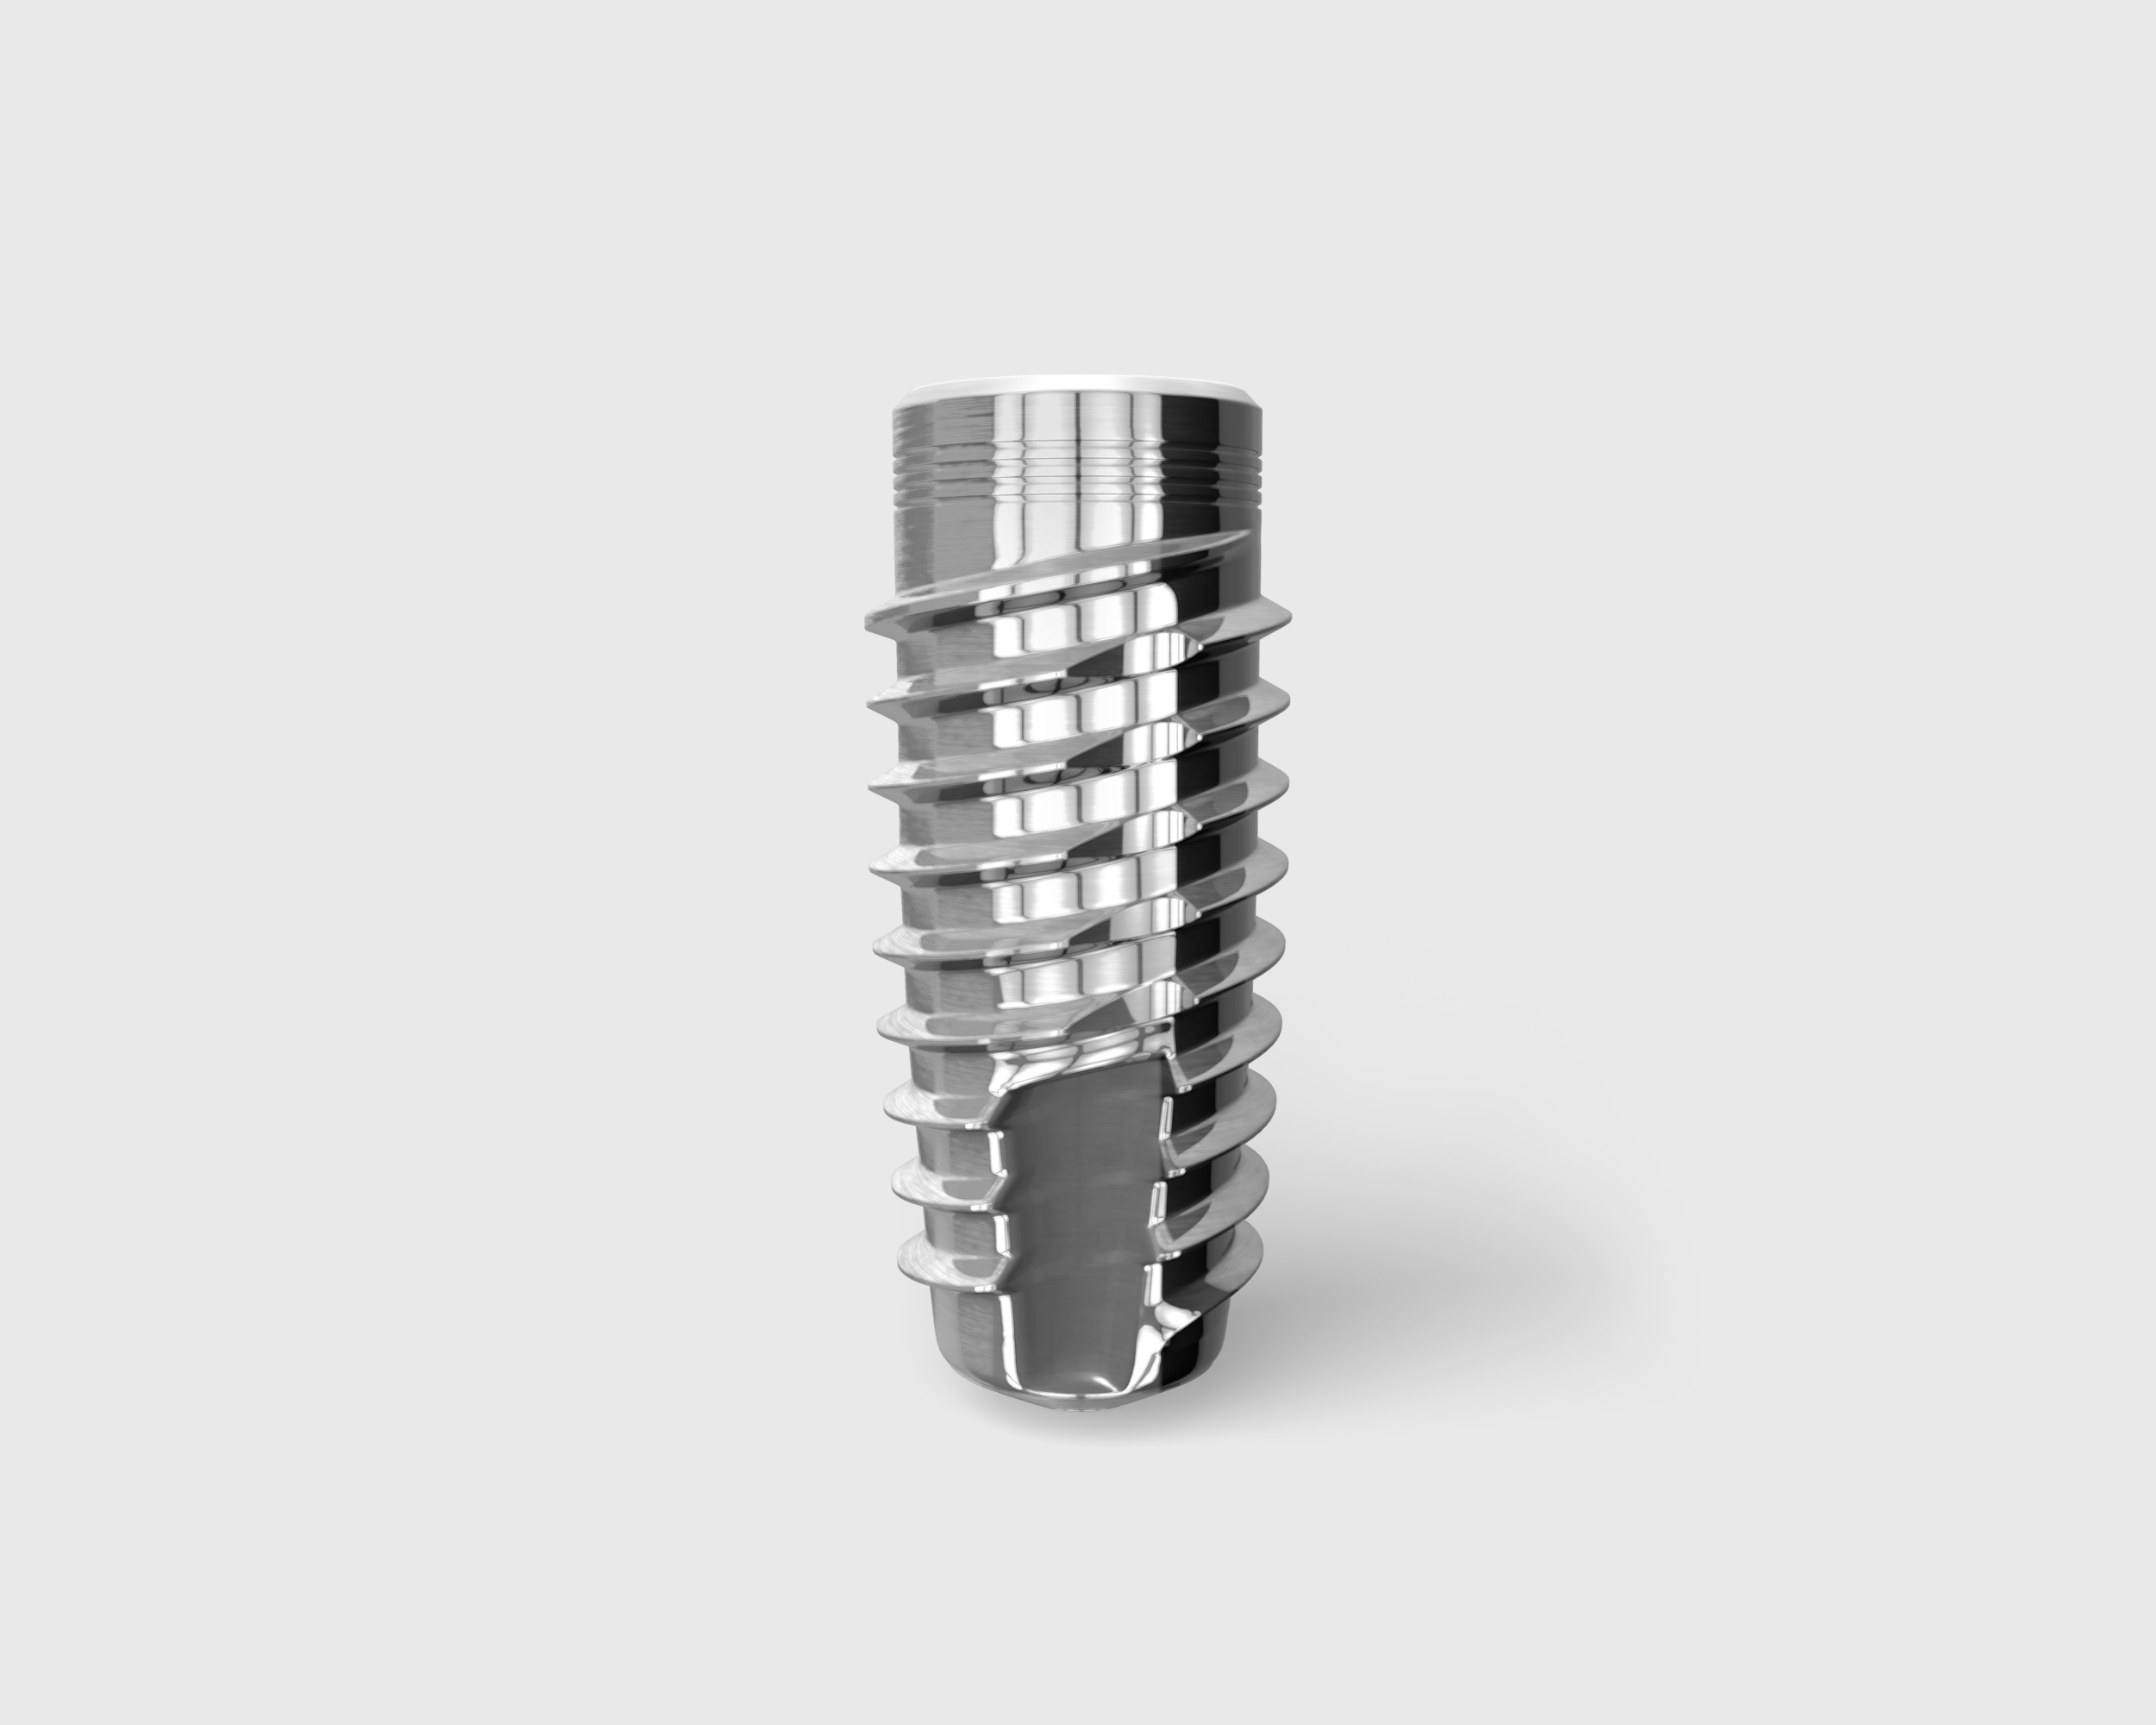 3.75 - 11.5 mm - Threaded Large Metallic